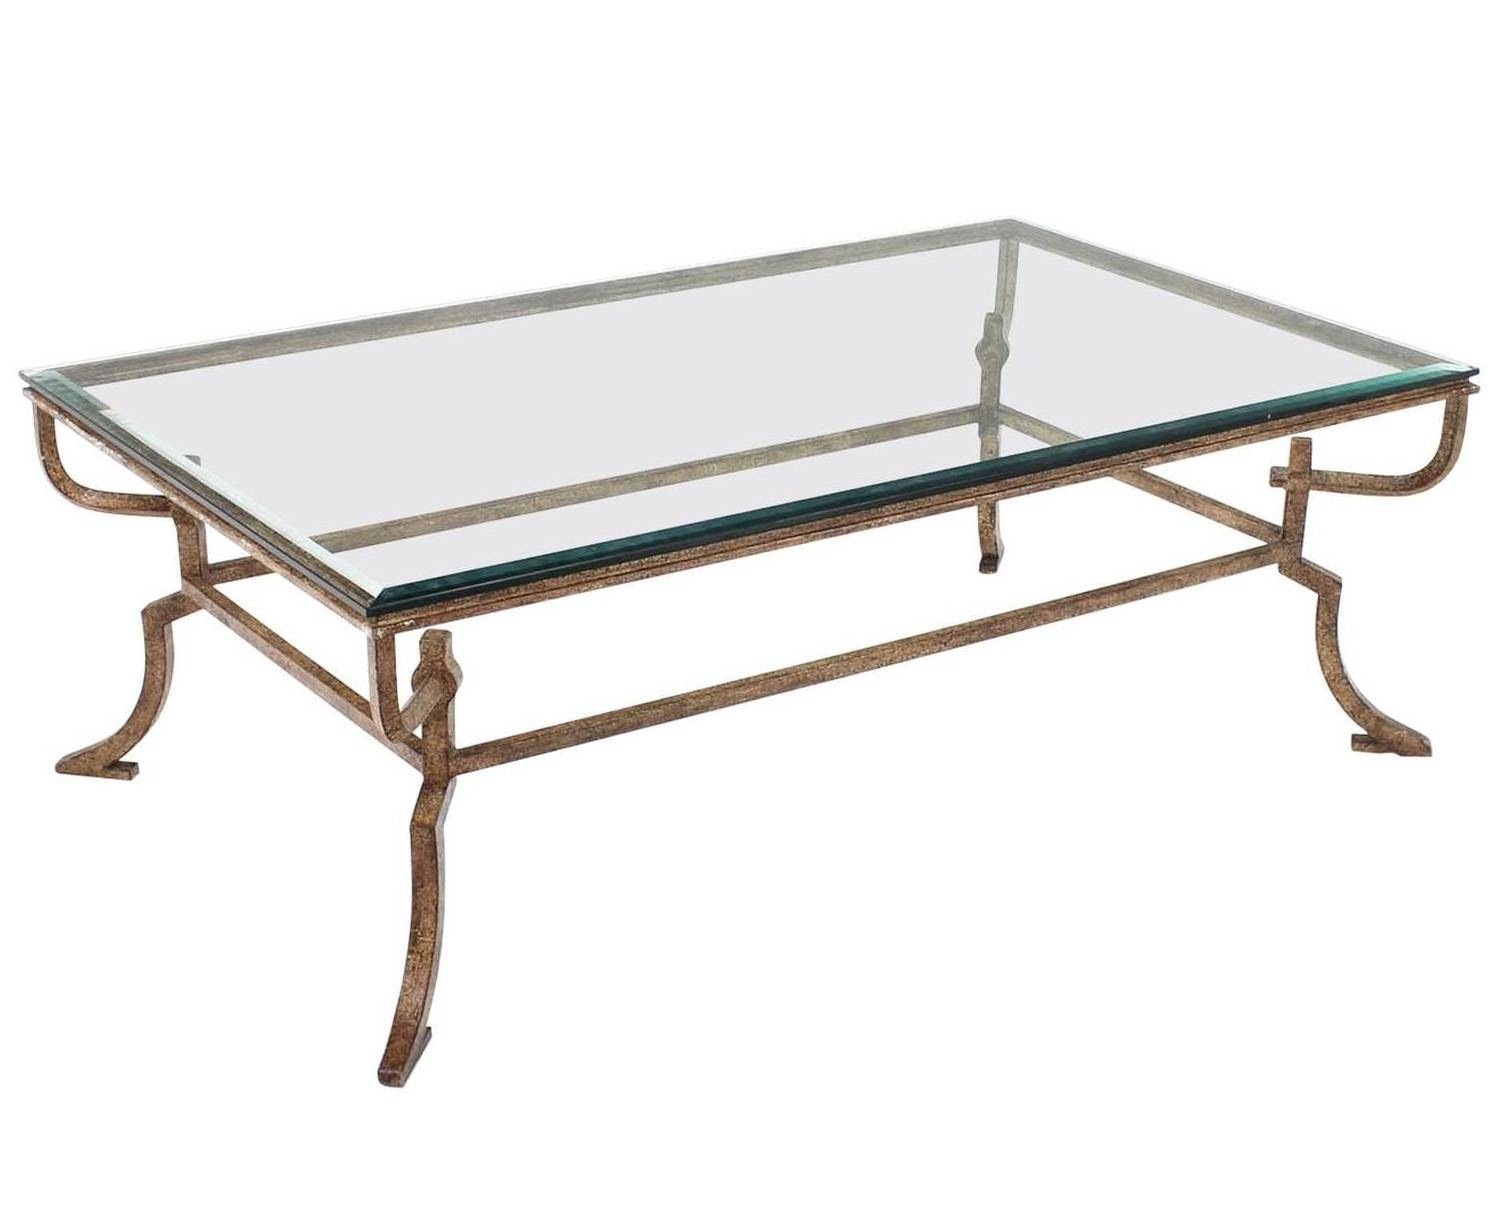 Wrought Iron Coffee Table With Glass And Wooden Round intended for Iron Glass Coffee Table (Image 14 of 15)